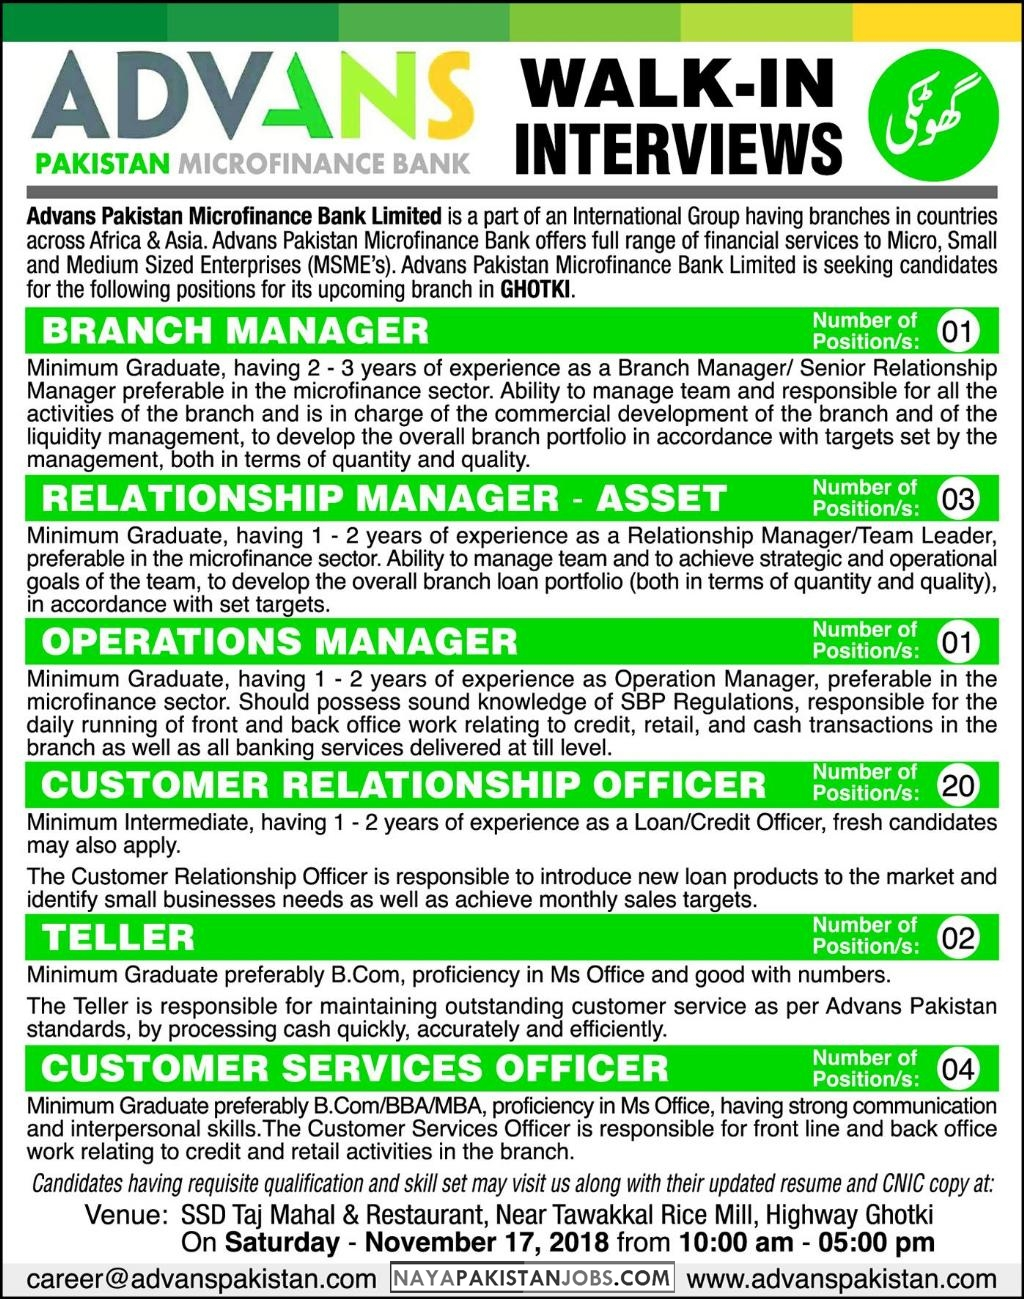 Latest Vacancies Announced in Advans Pakistan Microfinance Bank 12 November 2018 - Naya Pakistan